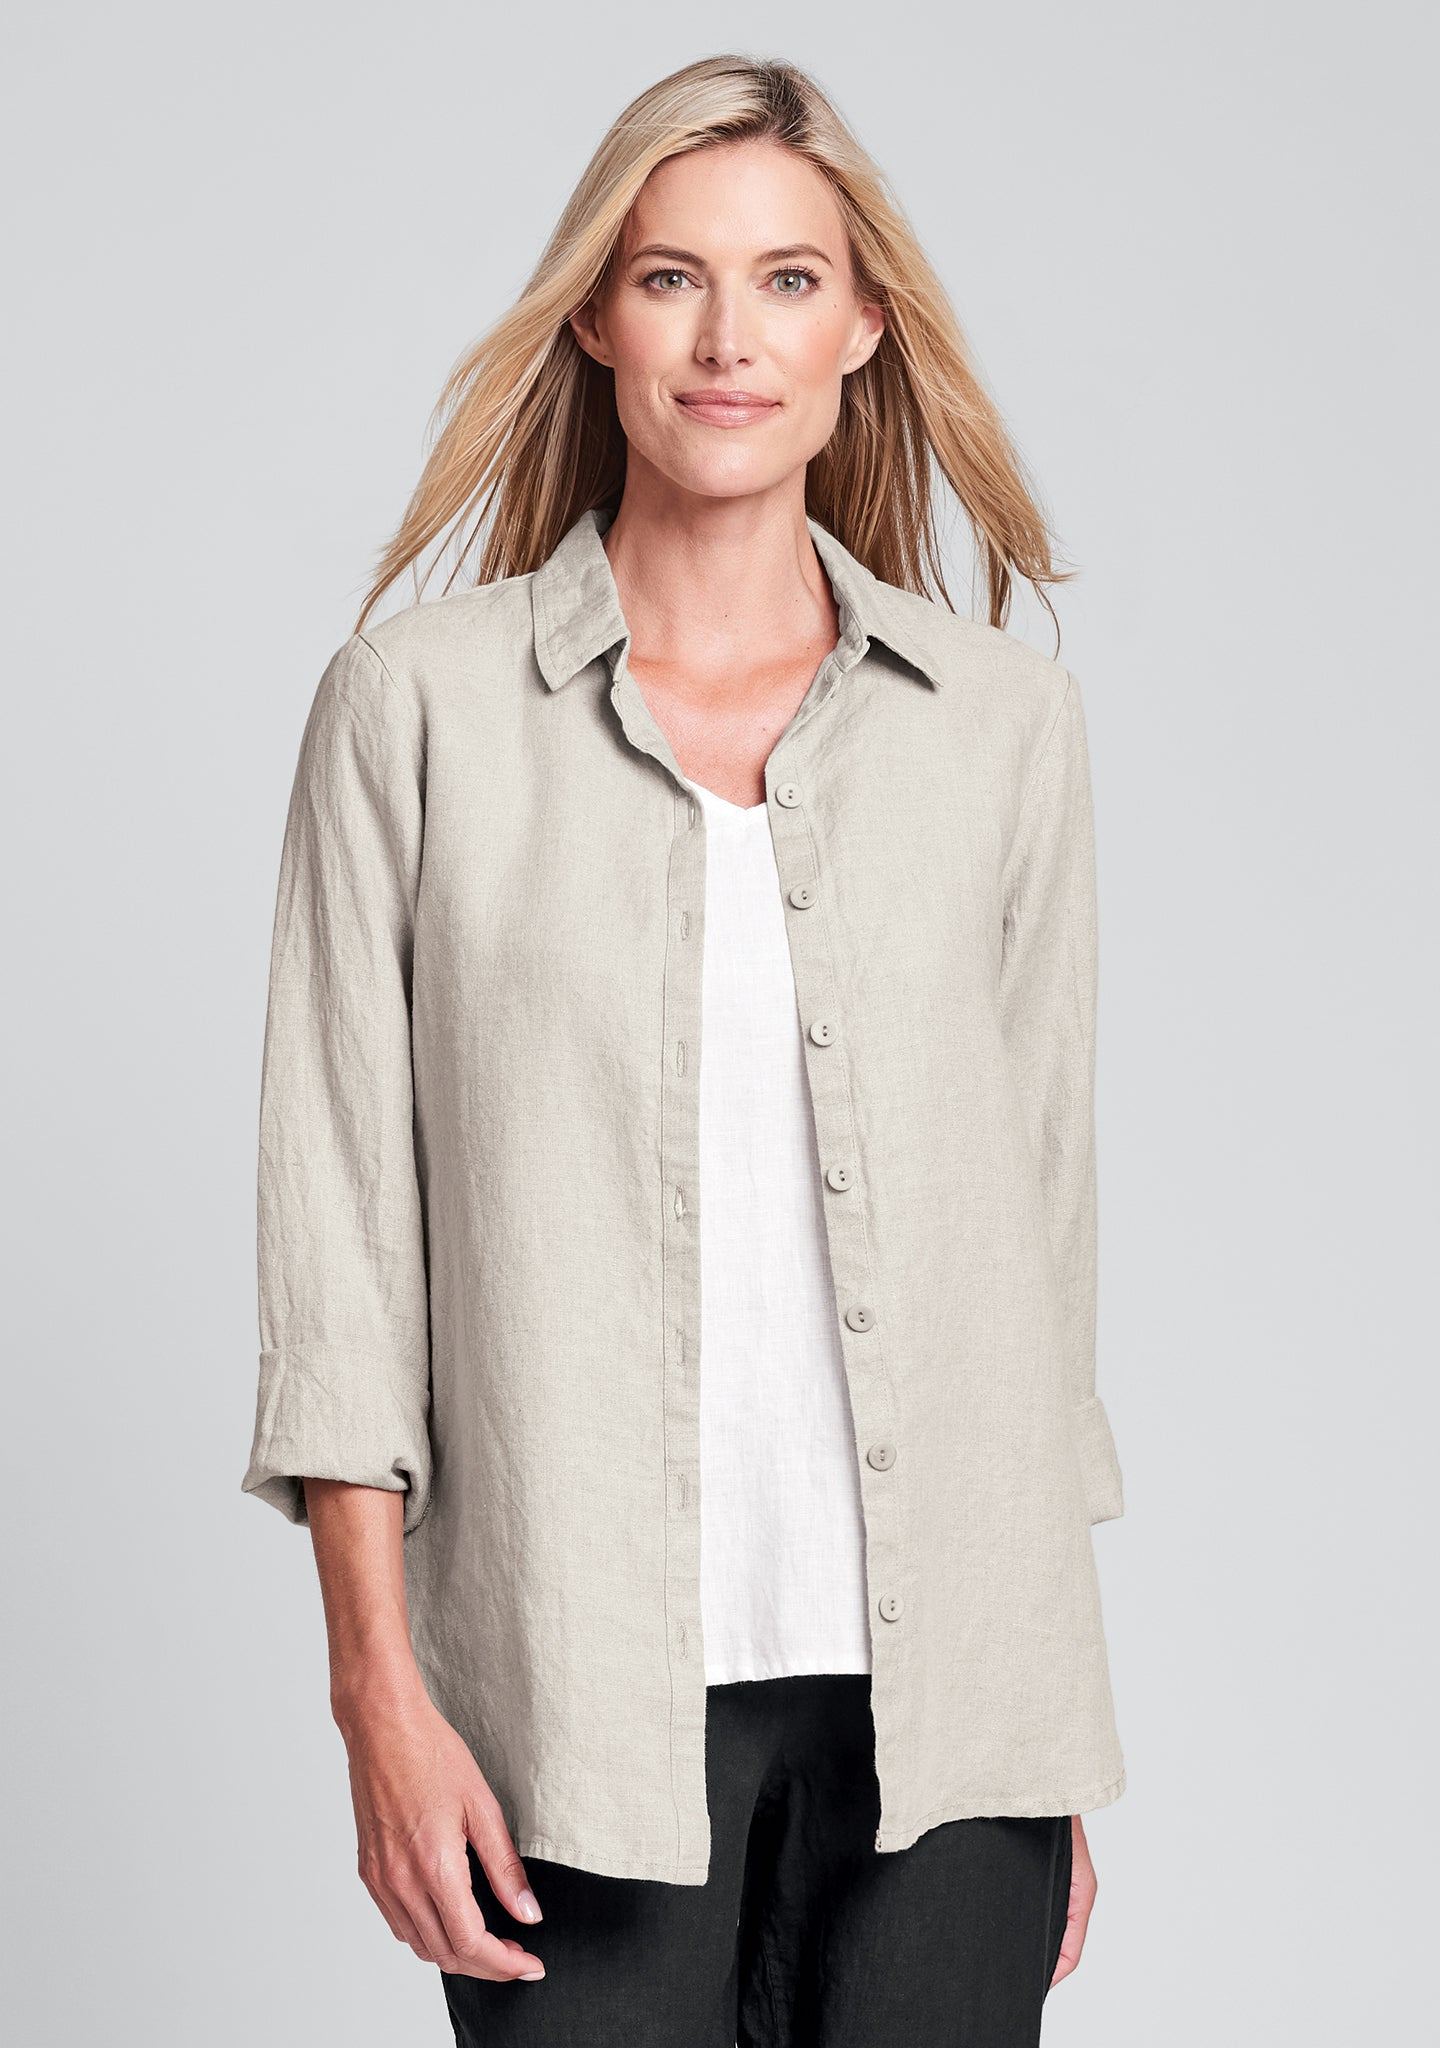 crossroads blouse linen button down shirt natural